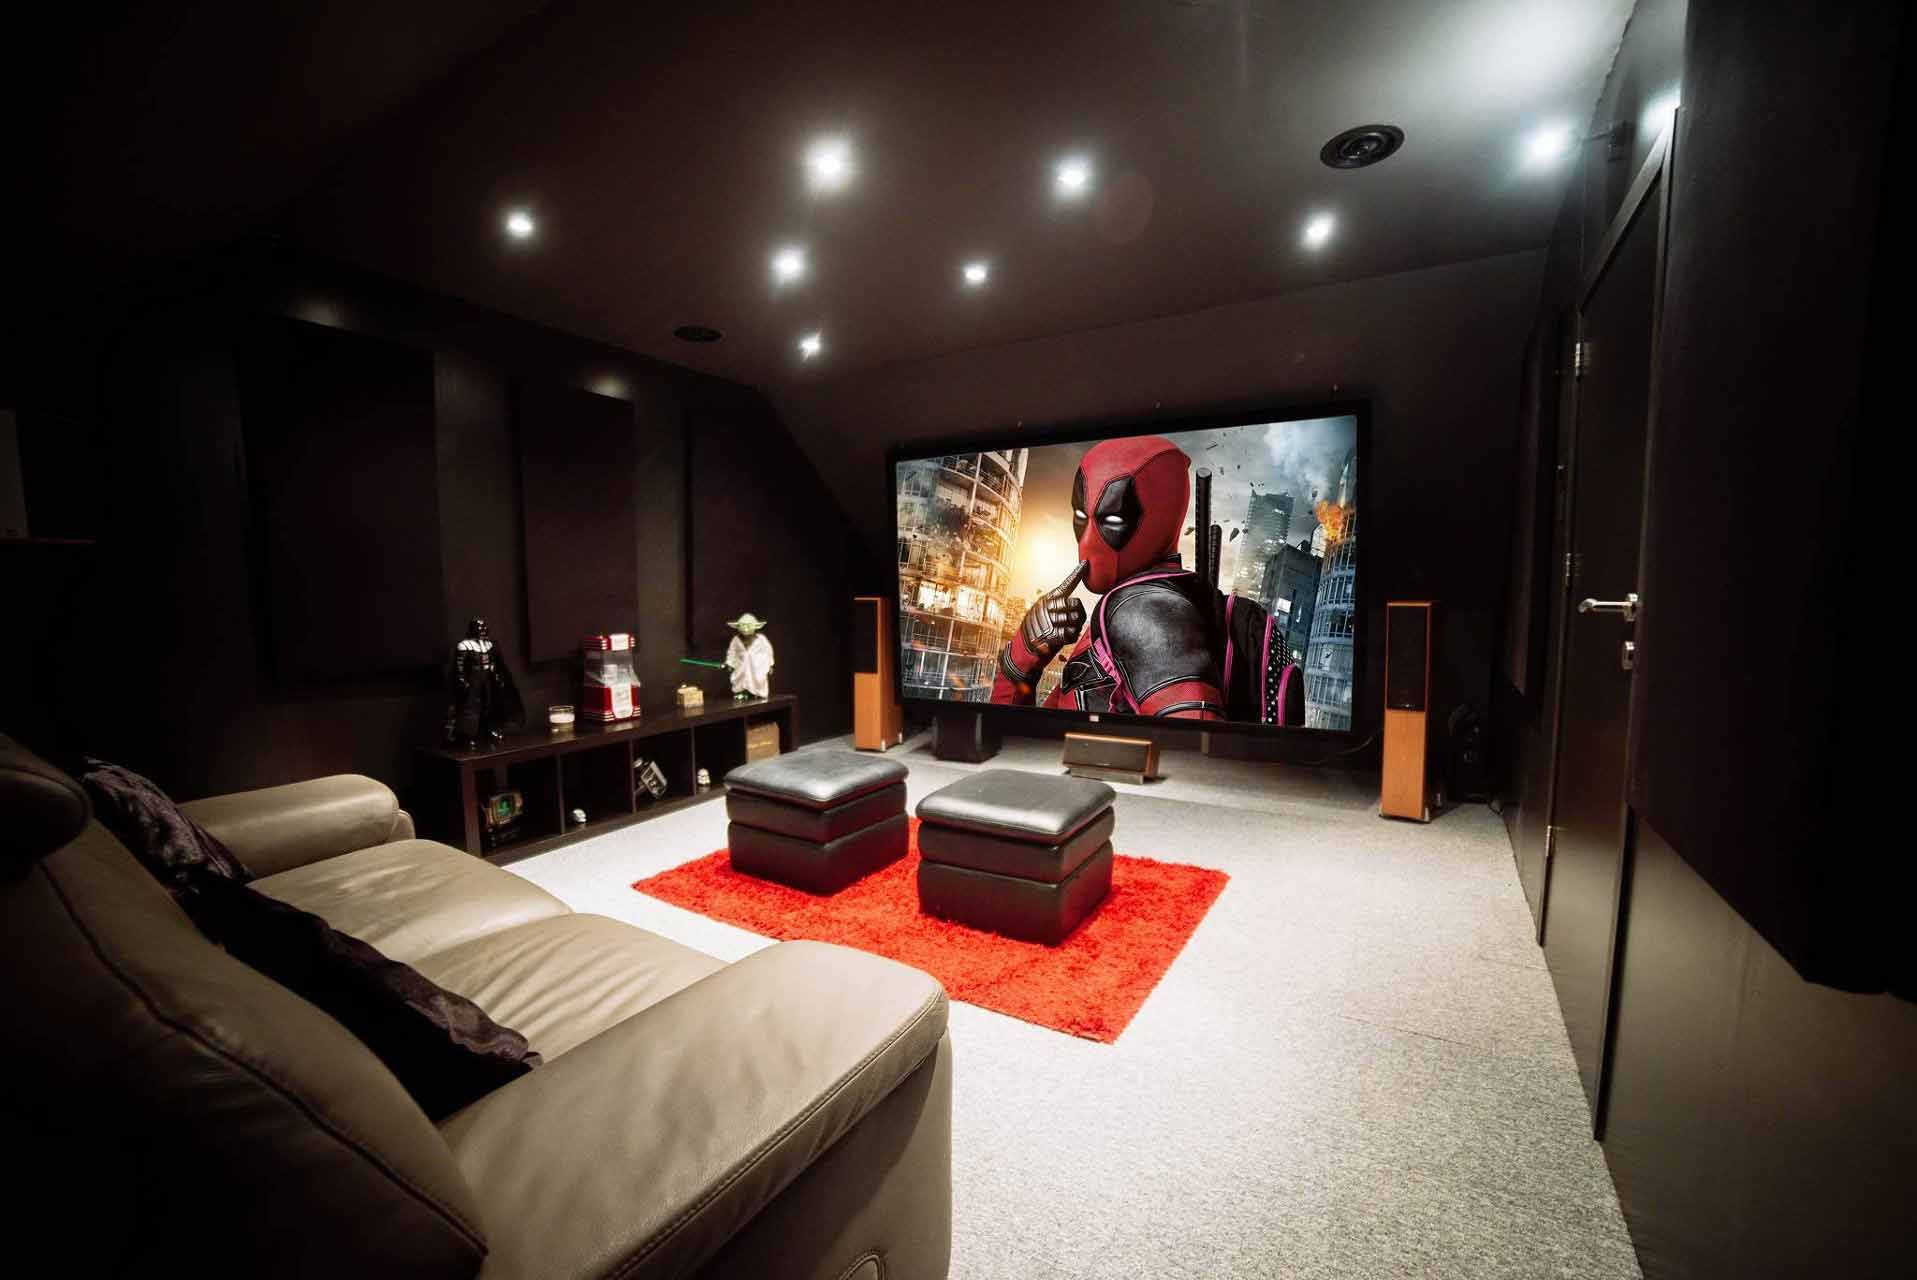 salle home cinma maison salle home cinema pictor lquipe de home cinma et domotique vous. Black Bedroom Furniture Sets. Home Design Ideas